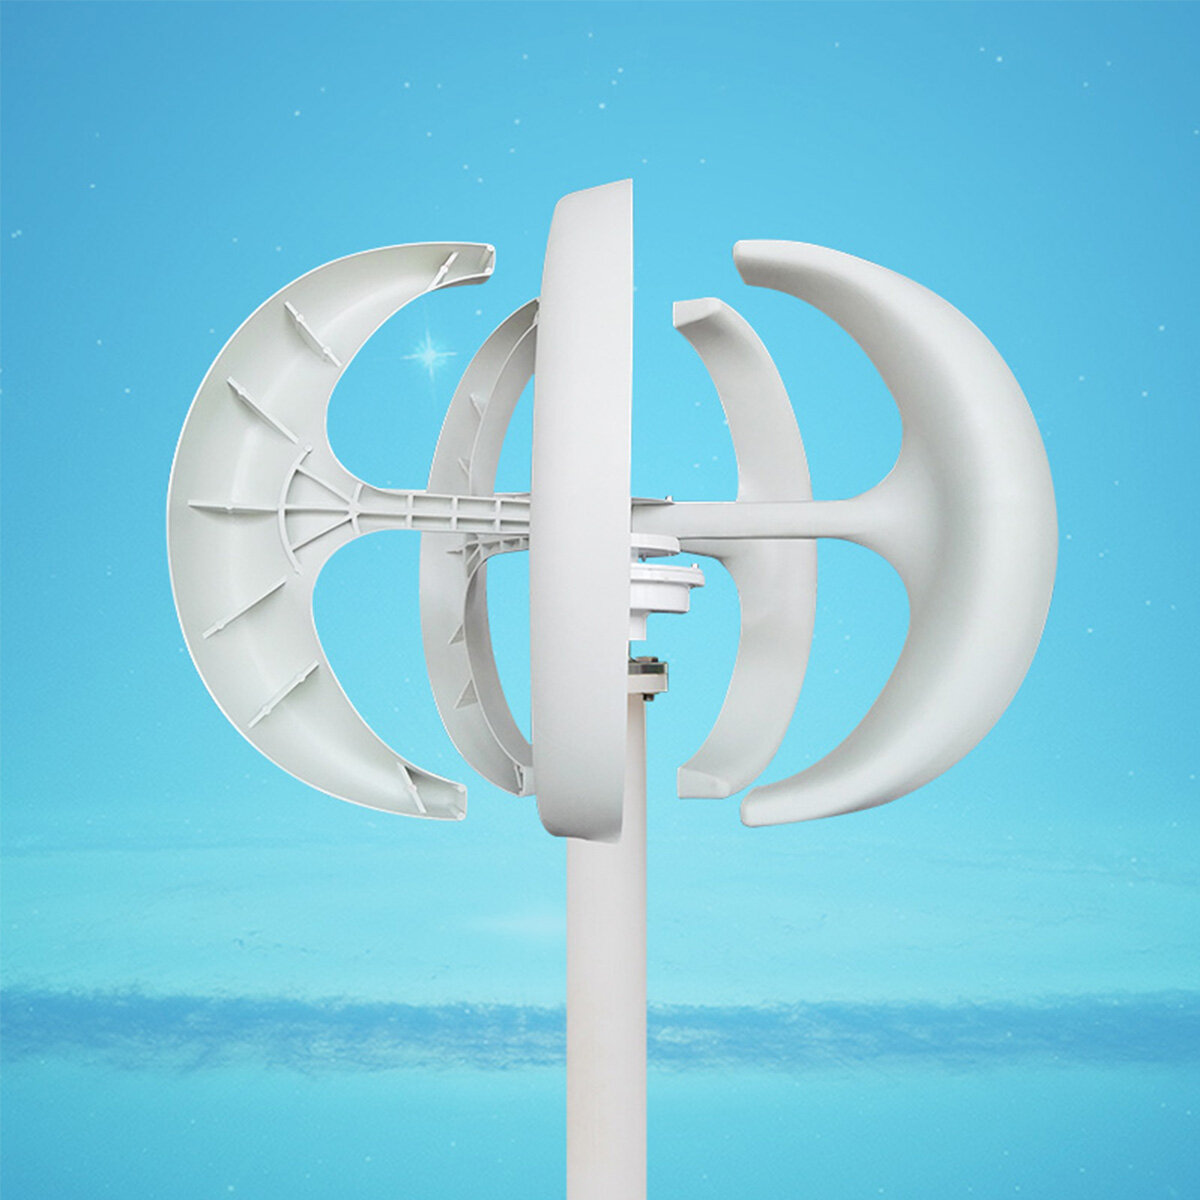 800W 12V/24V 5 Blades Permanent Magnet Wind Turbine Generator with Charge Controller